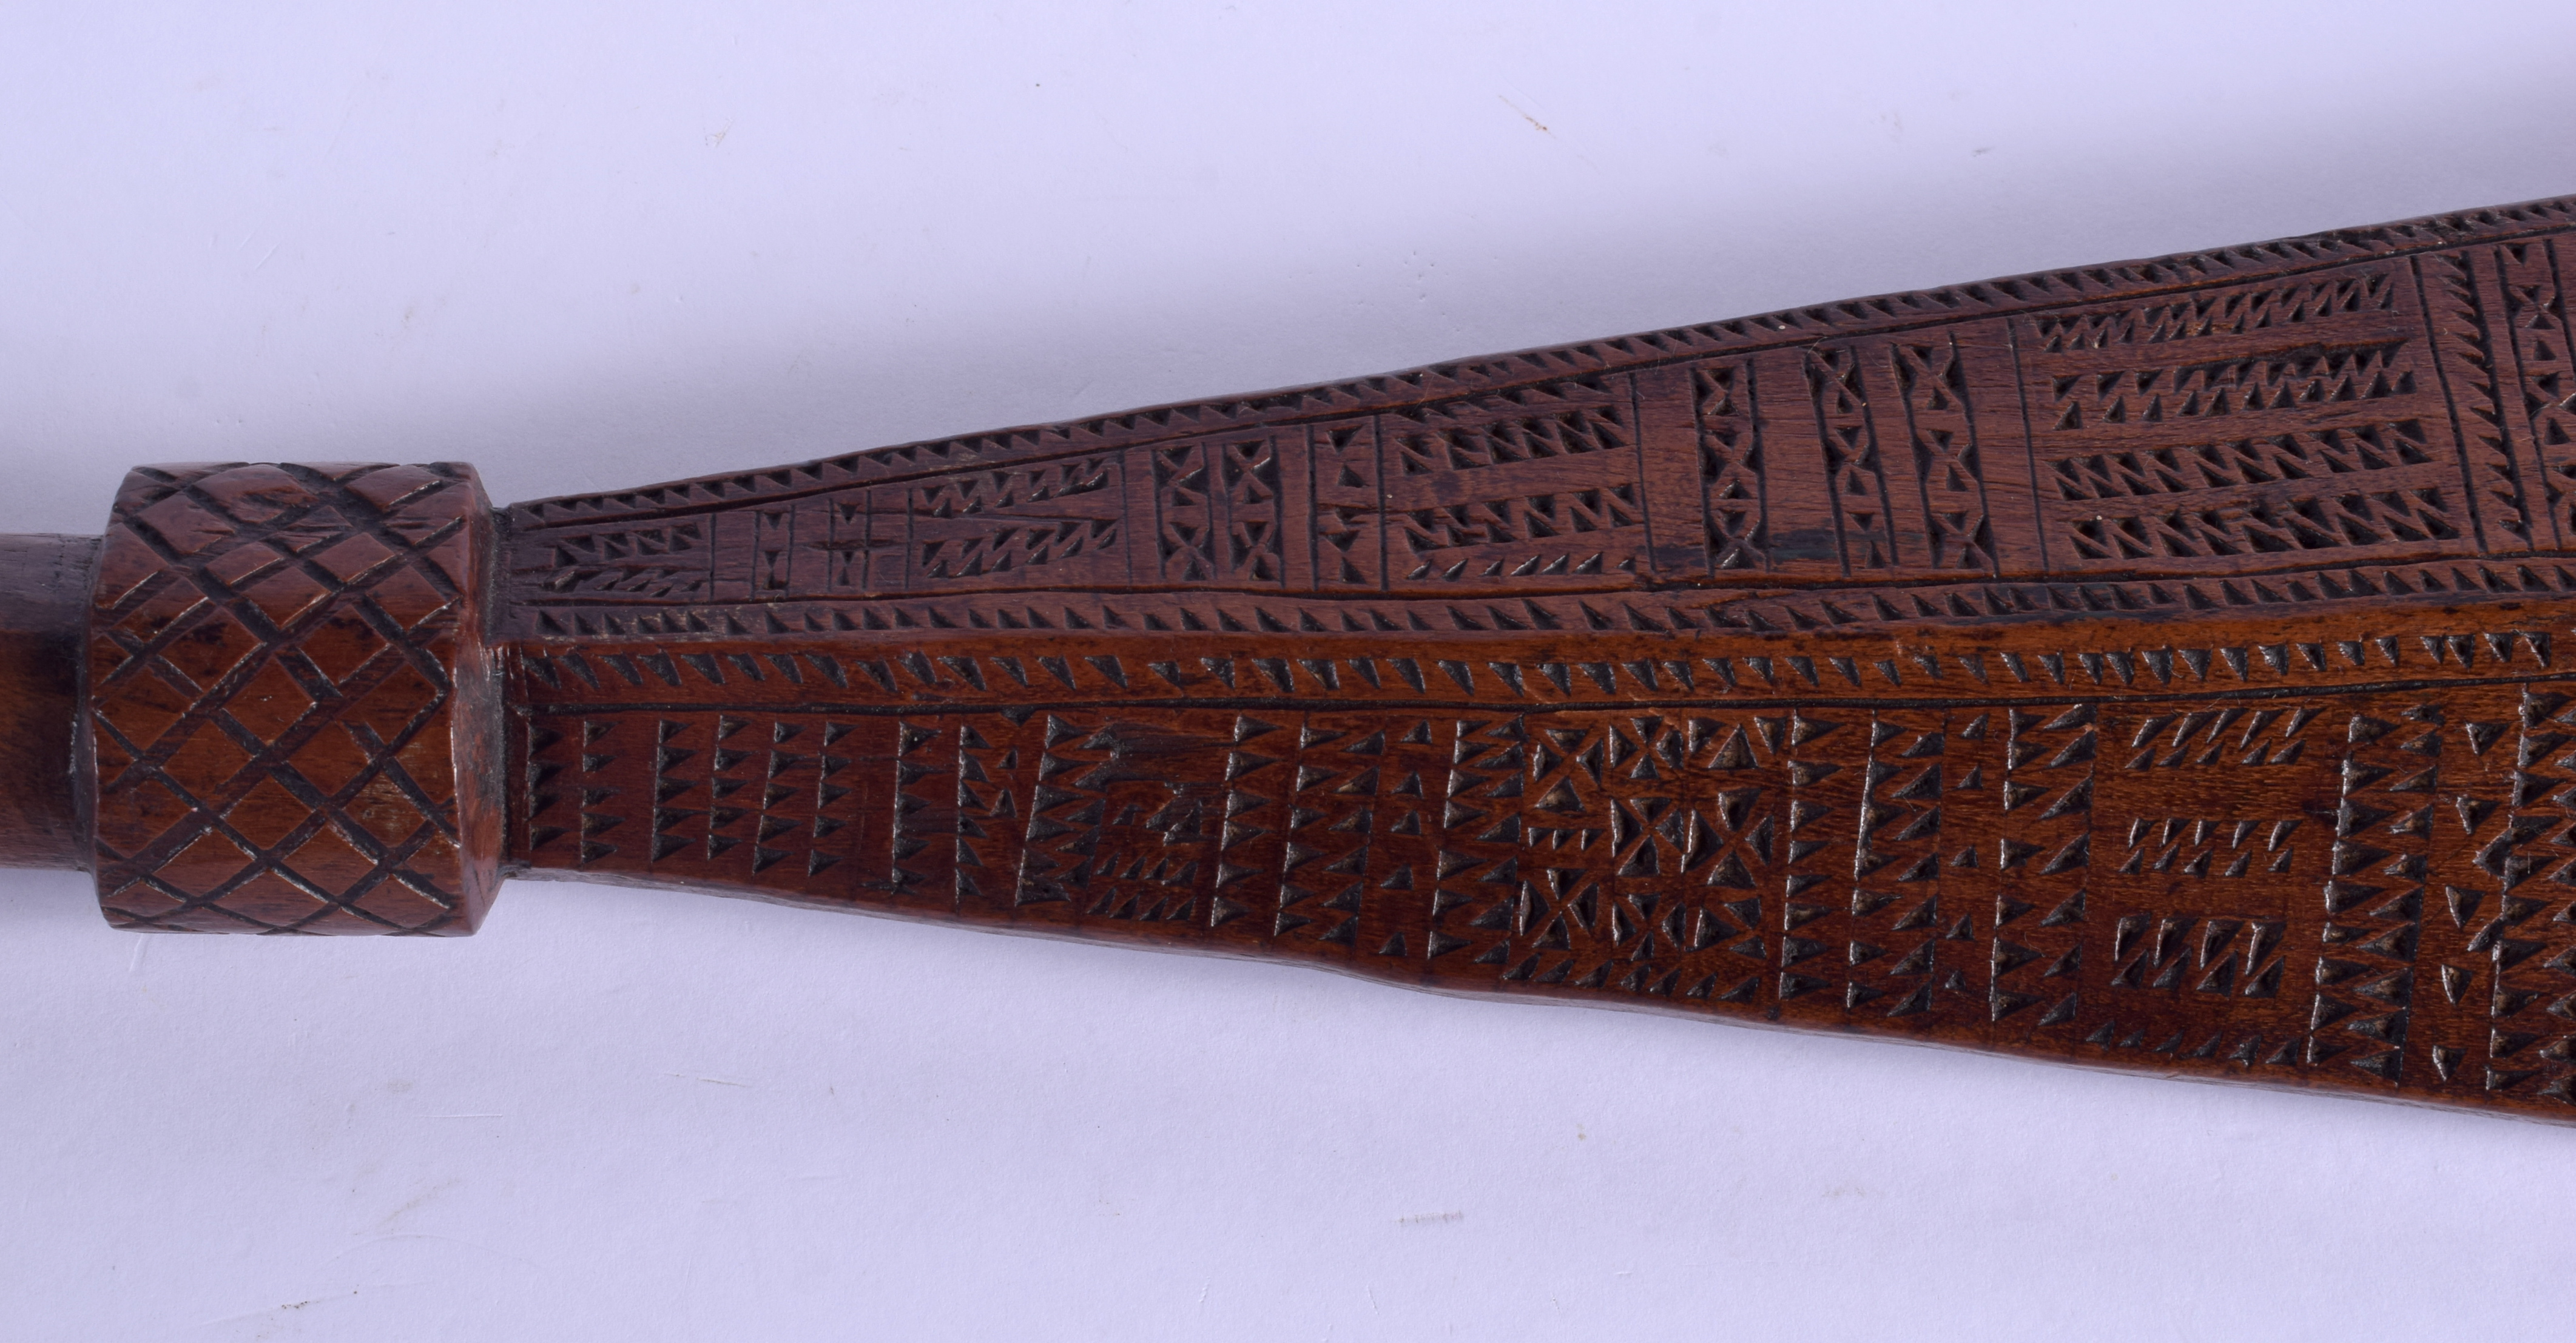 A 19TH CENTURY TONGAN SAMOAN CARVED TRIBAL CLUB decorated with geometric motifs. 68 cm long. - Image 7 of 8